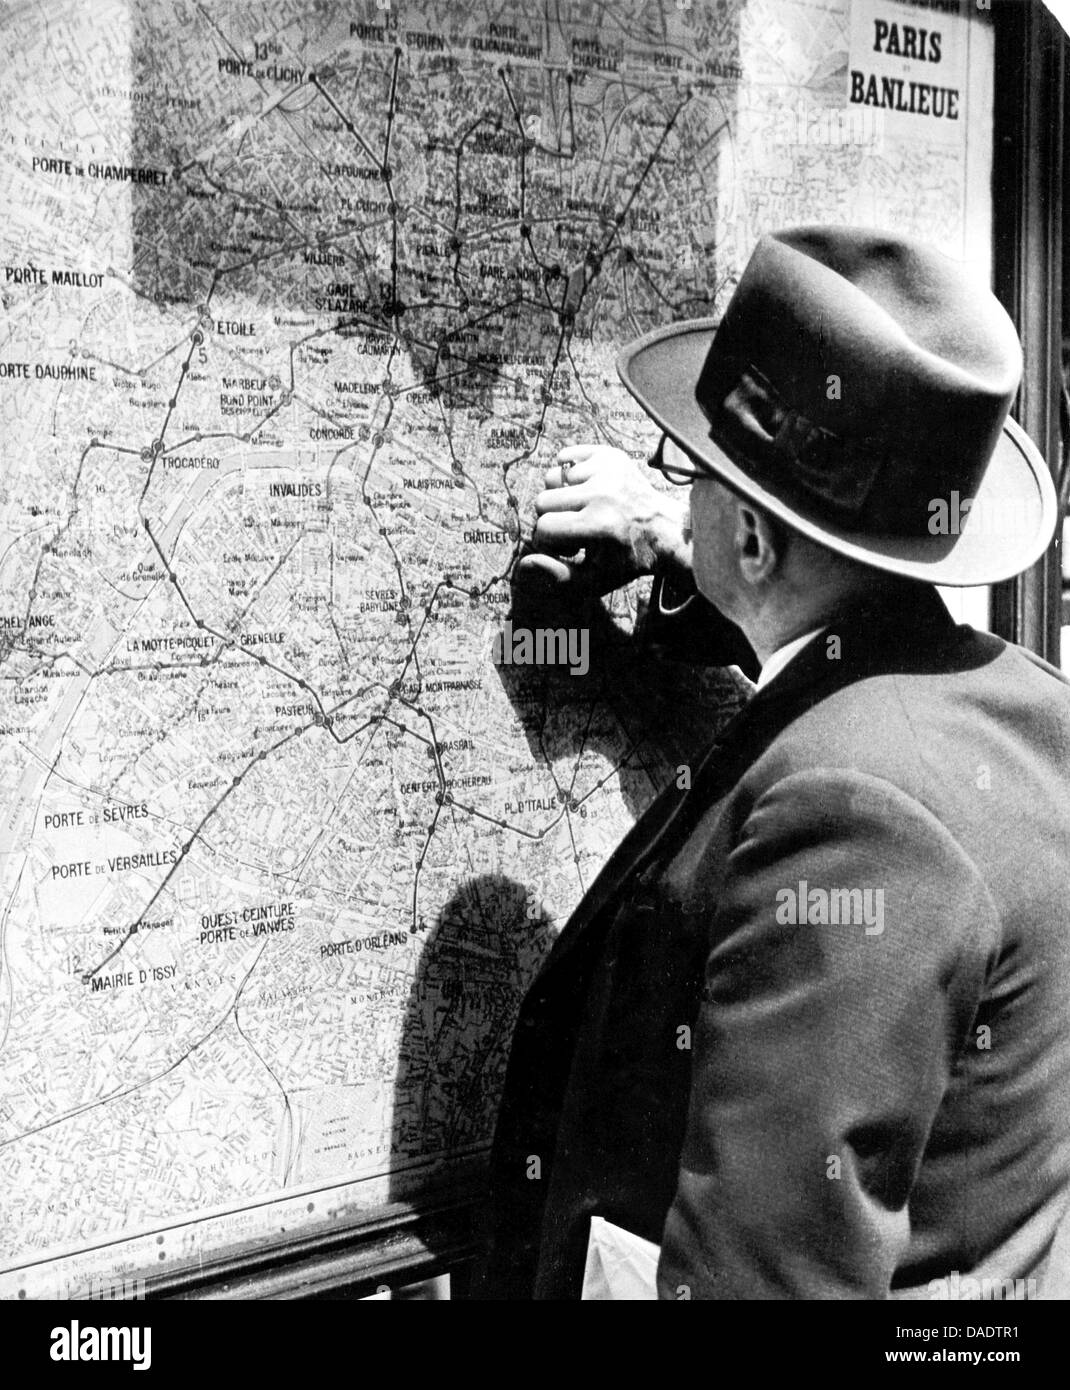 Subway Map Before 1933.A Man Seeks Information At A Subway Map In Paris In 1935 Image By